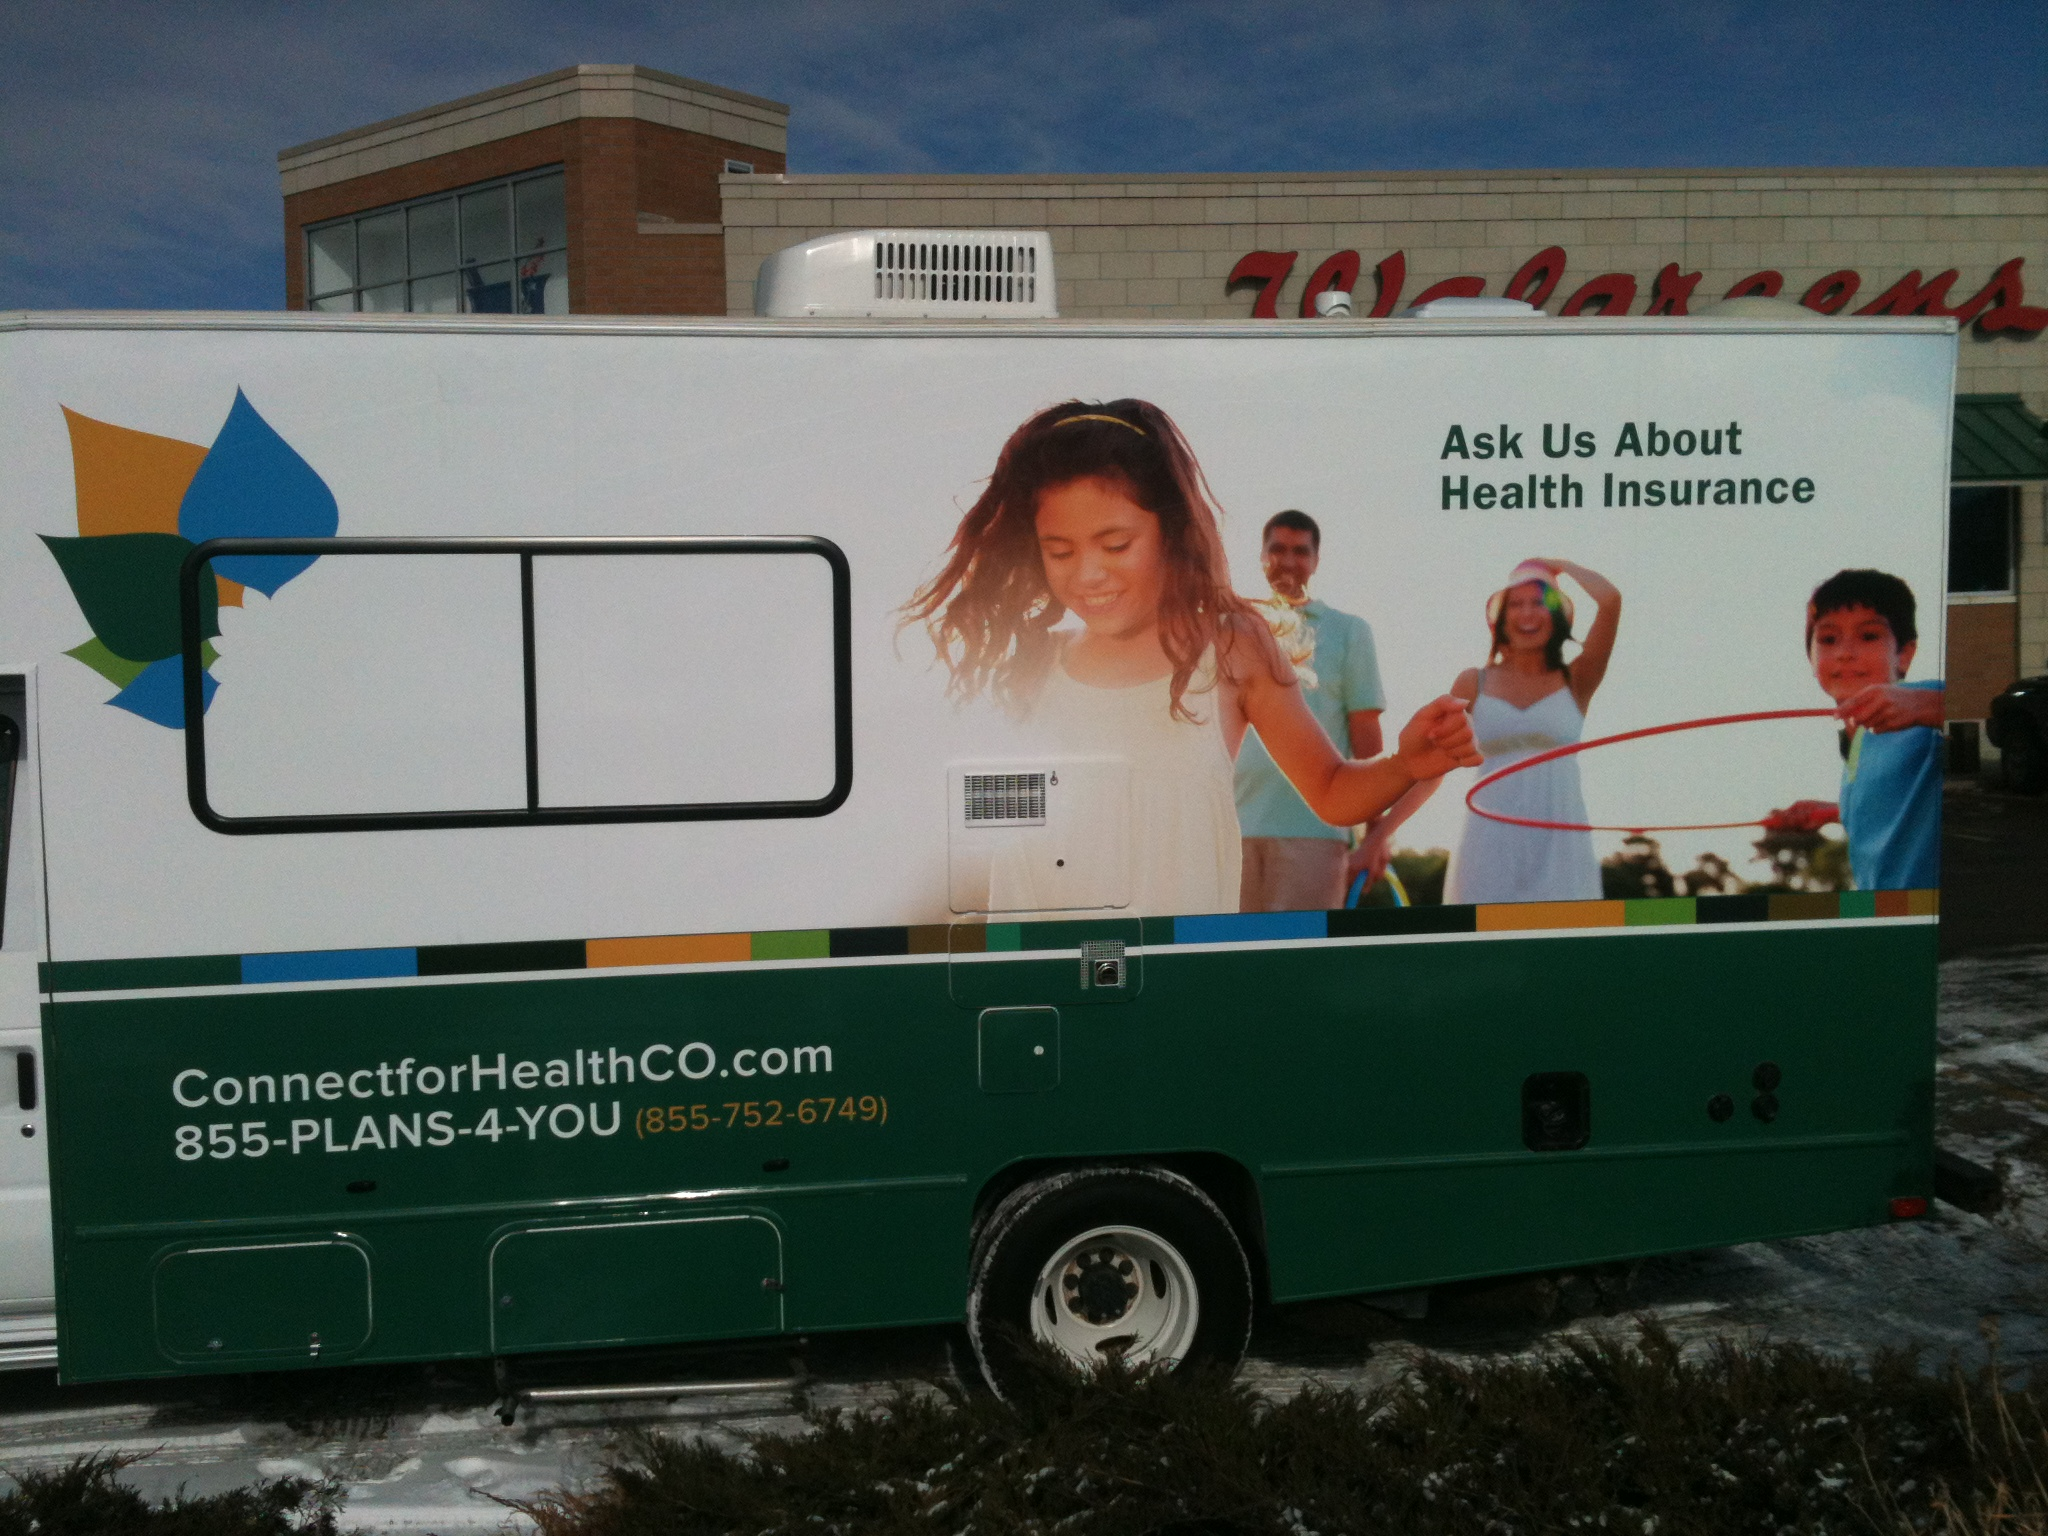 Part of the statewide RV tour, including events at King Soopers and on small-town main streets.